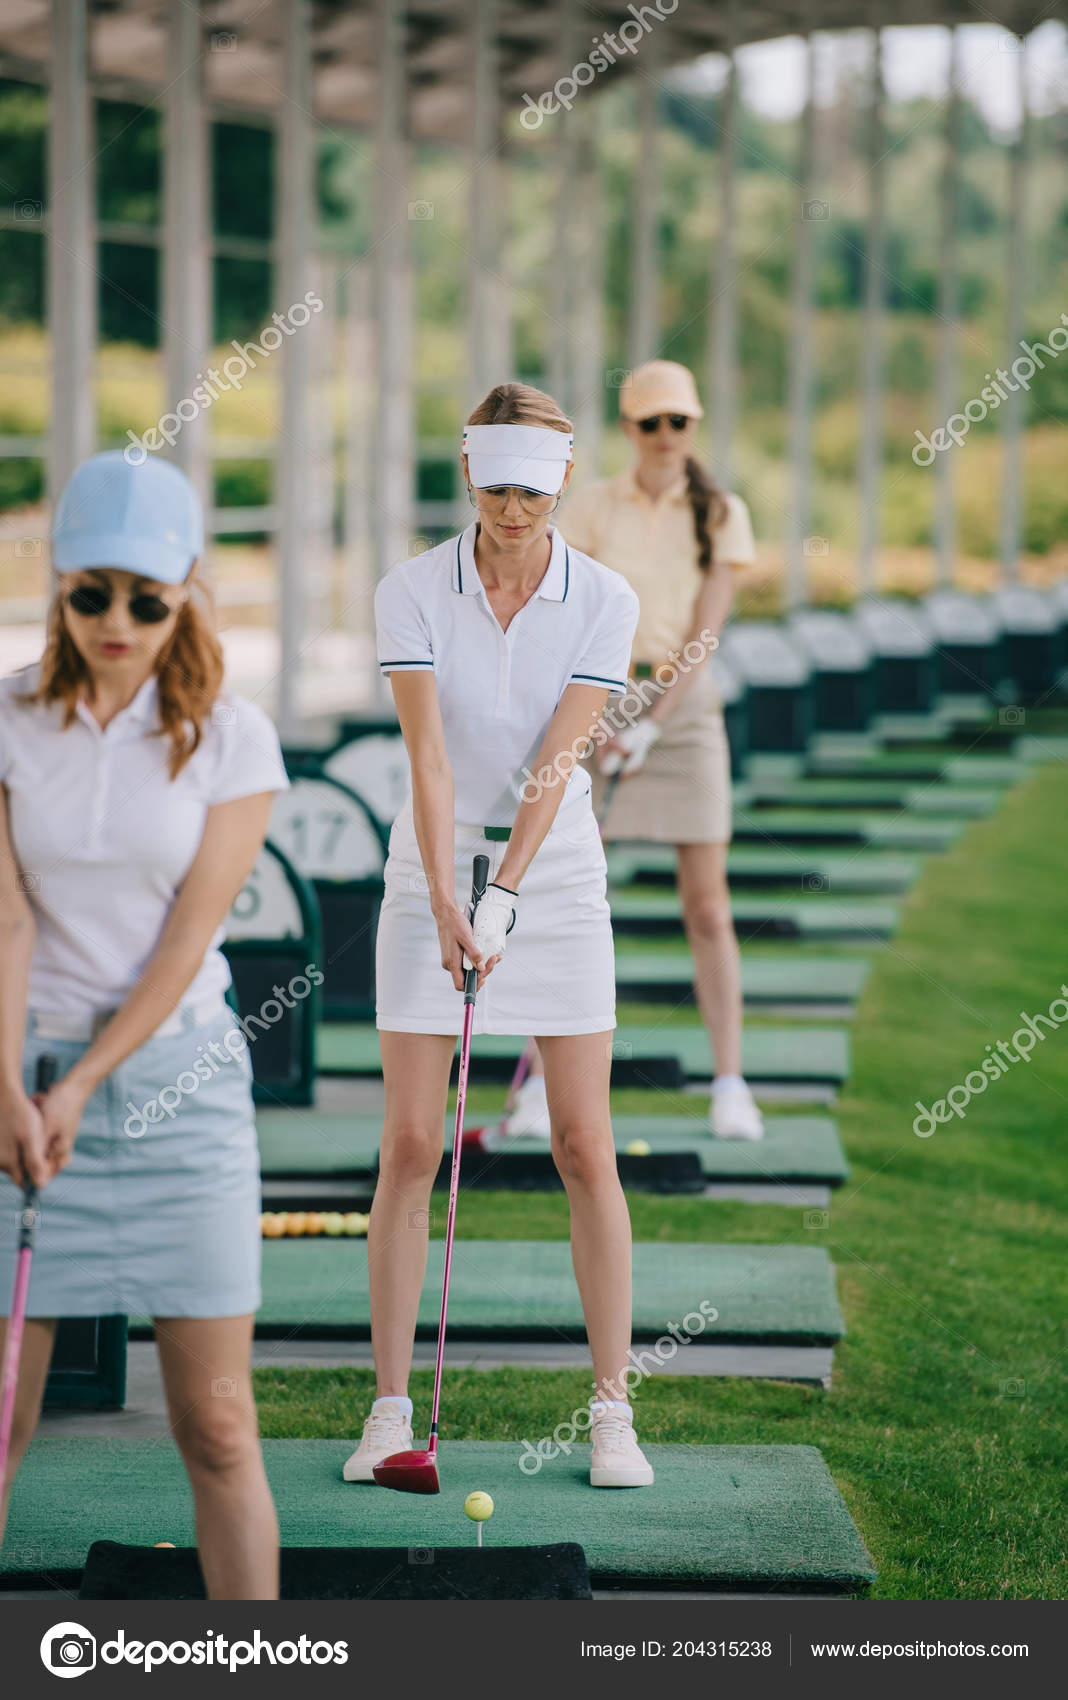 Women playing golf together on course - Stock Image - F007